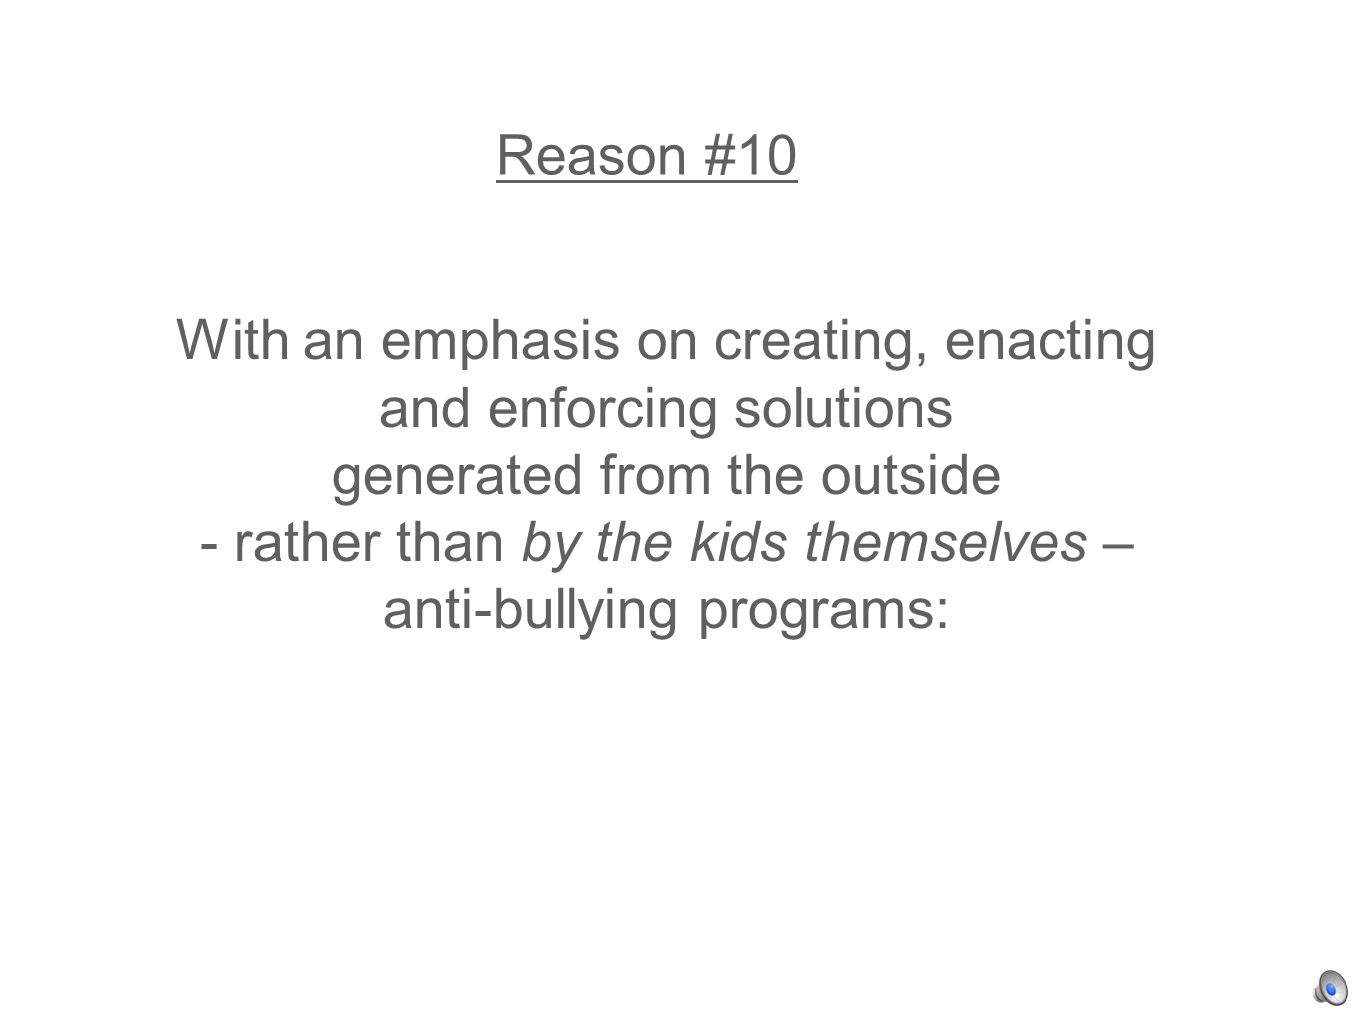 With an emphasis on creating, enacting and enforcing solutions generated from the outside - rather than by the kids themselves – anti-bullying programs: Reason #10